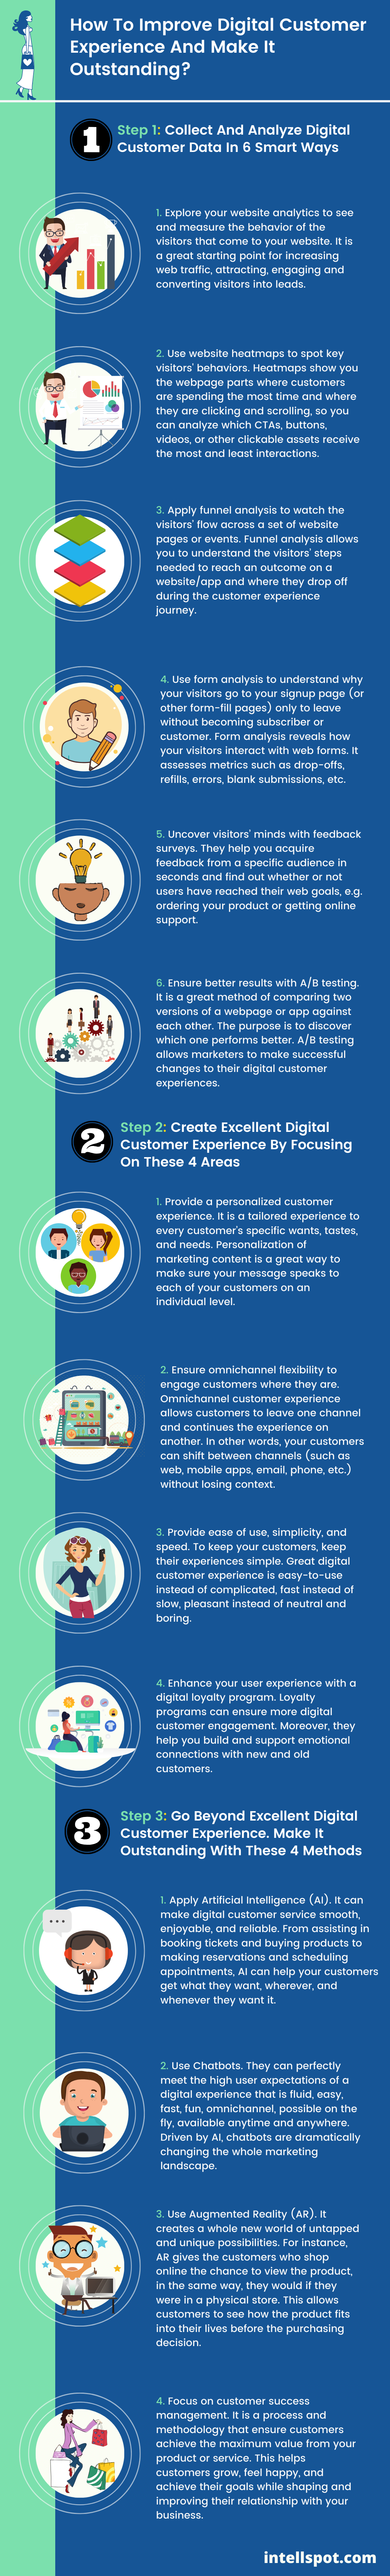 How To Improve Digital Customer Experience - infographic